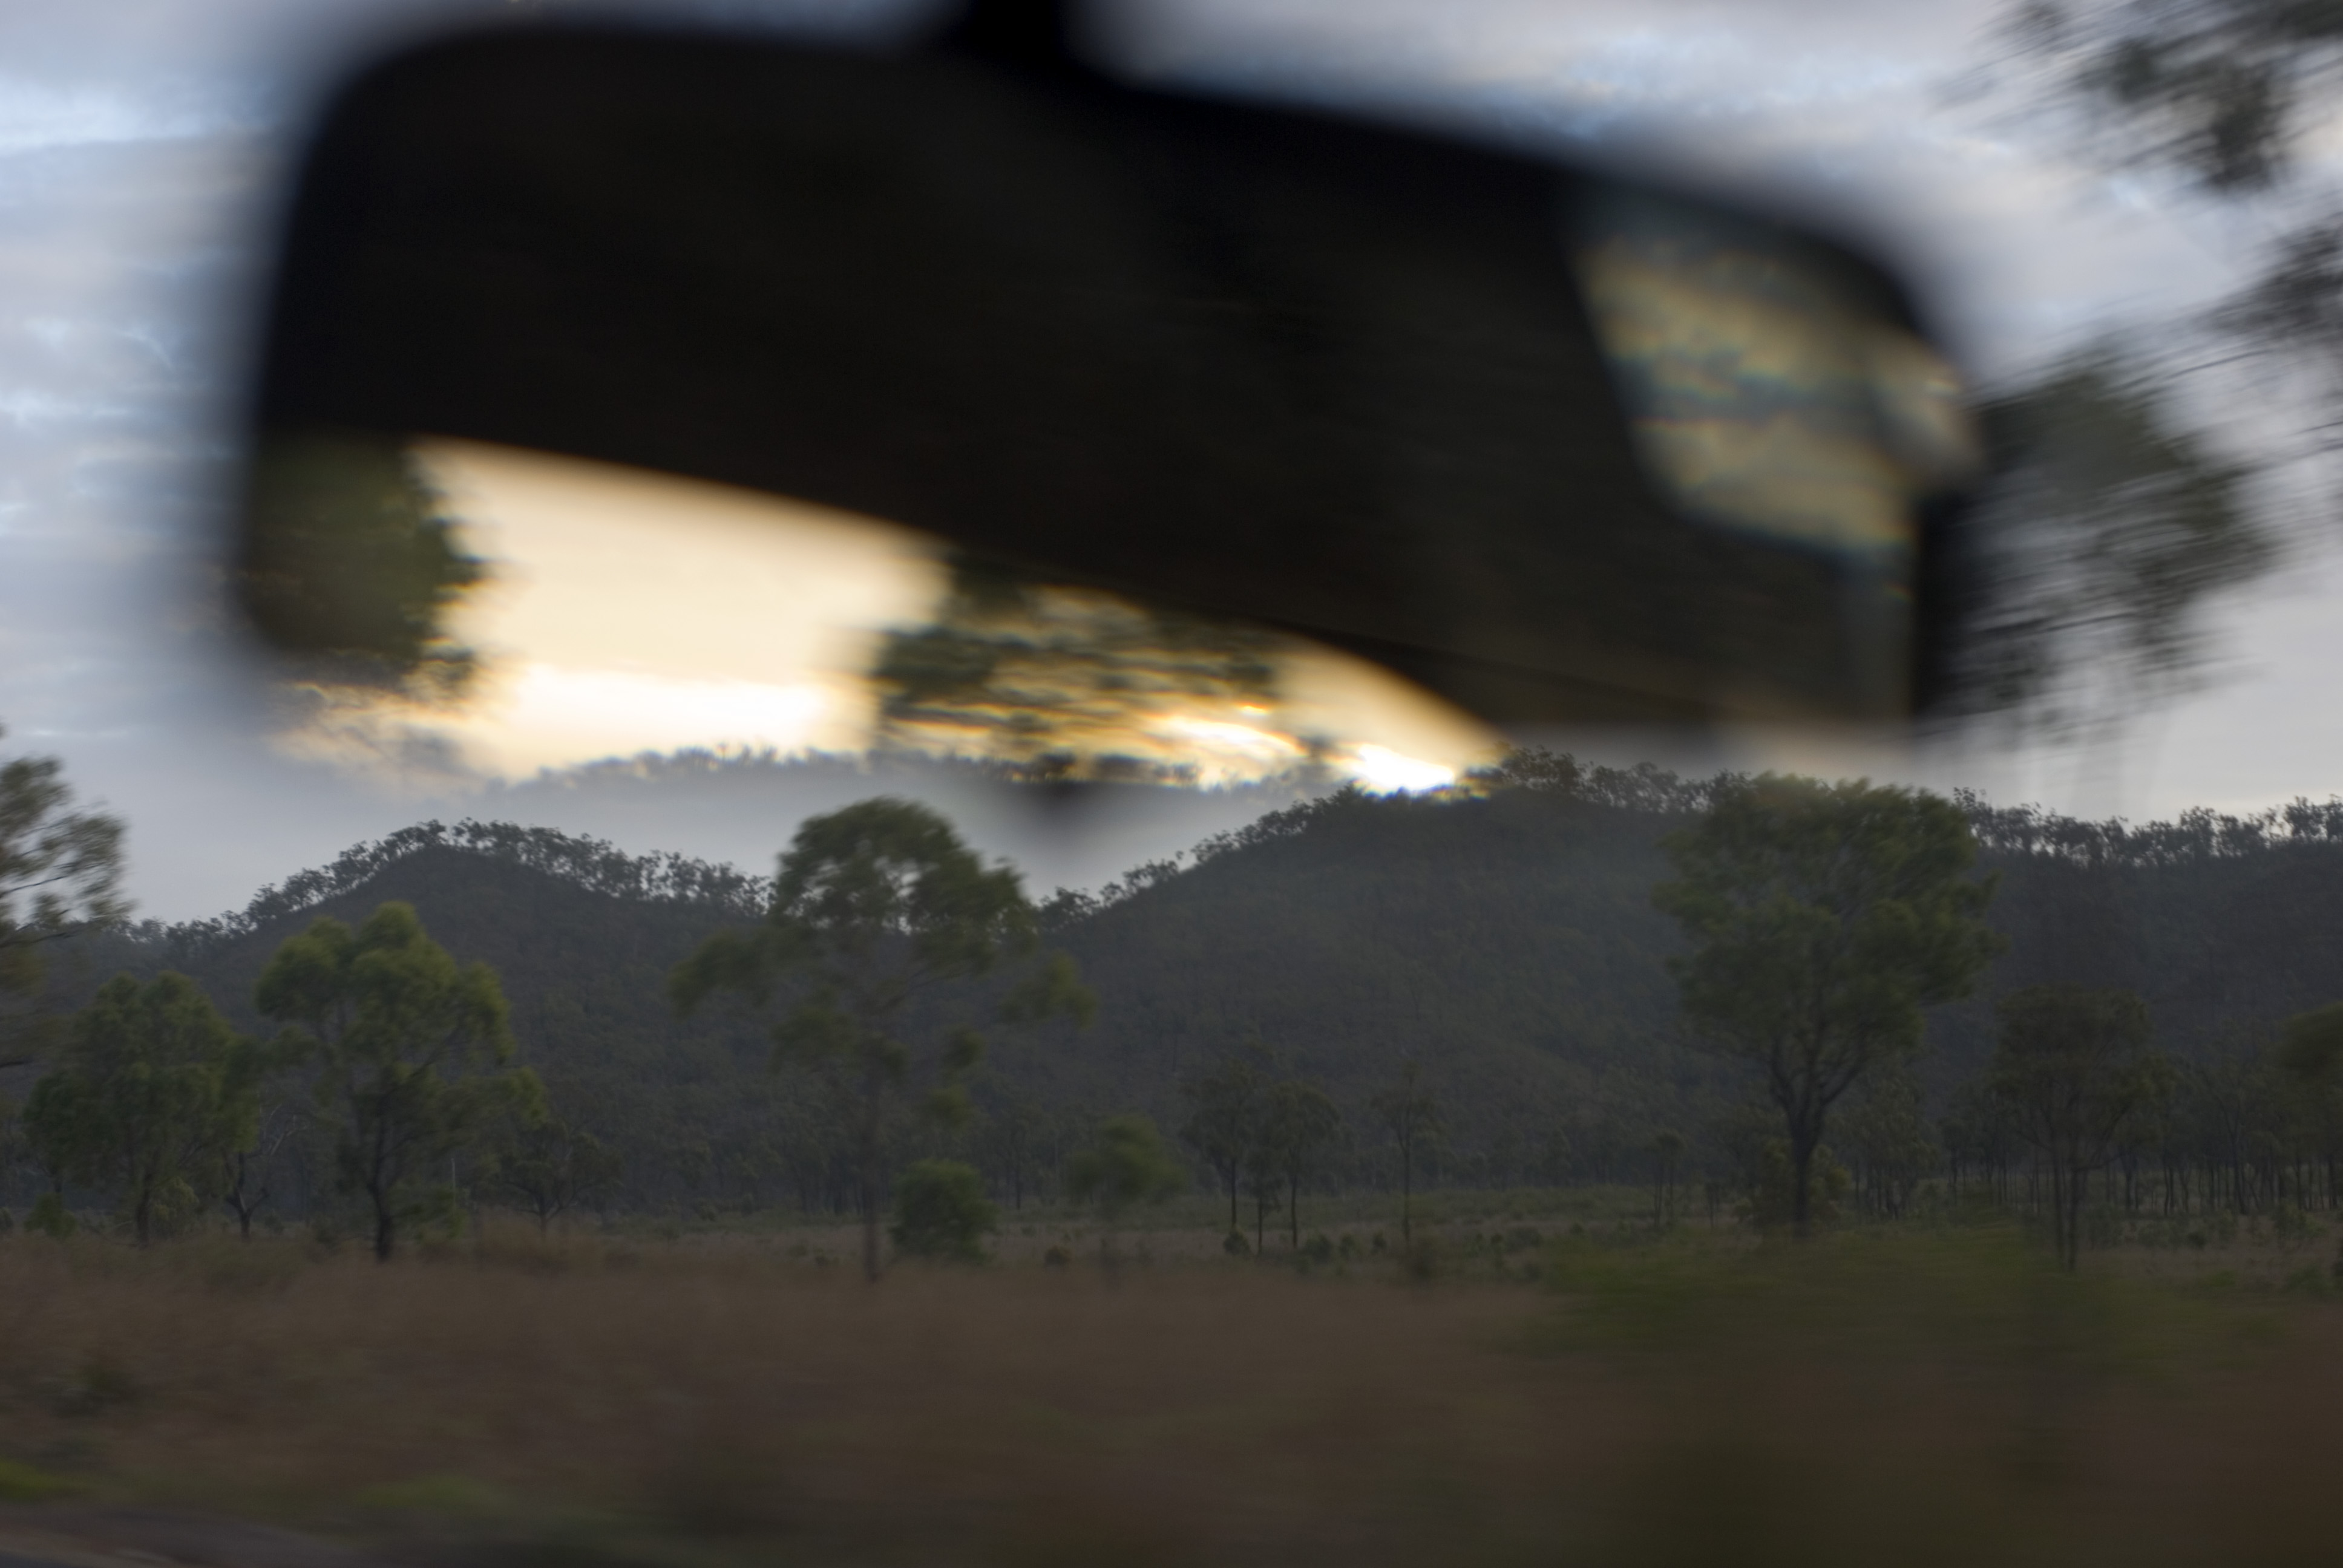 abstract blur in a rear view mirror austrlian landscape